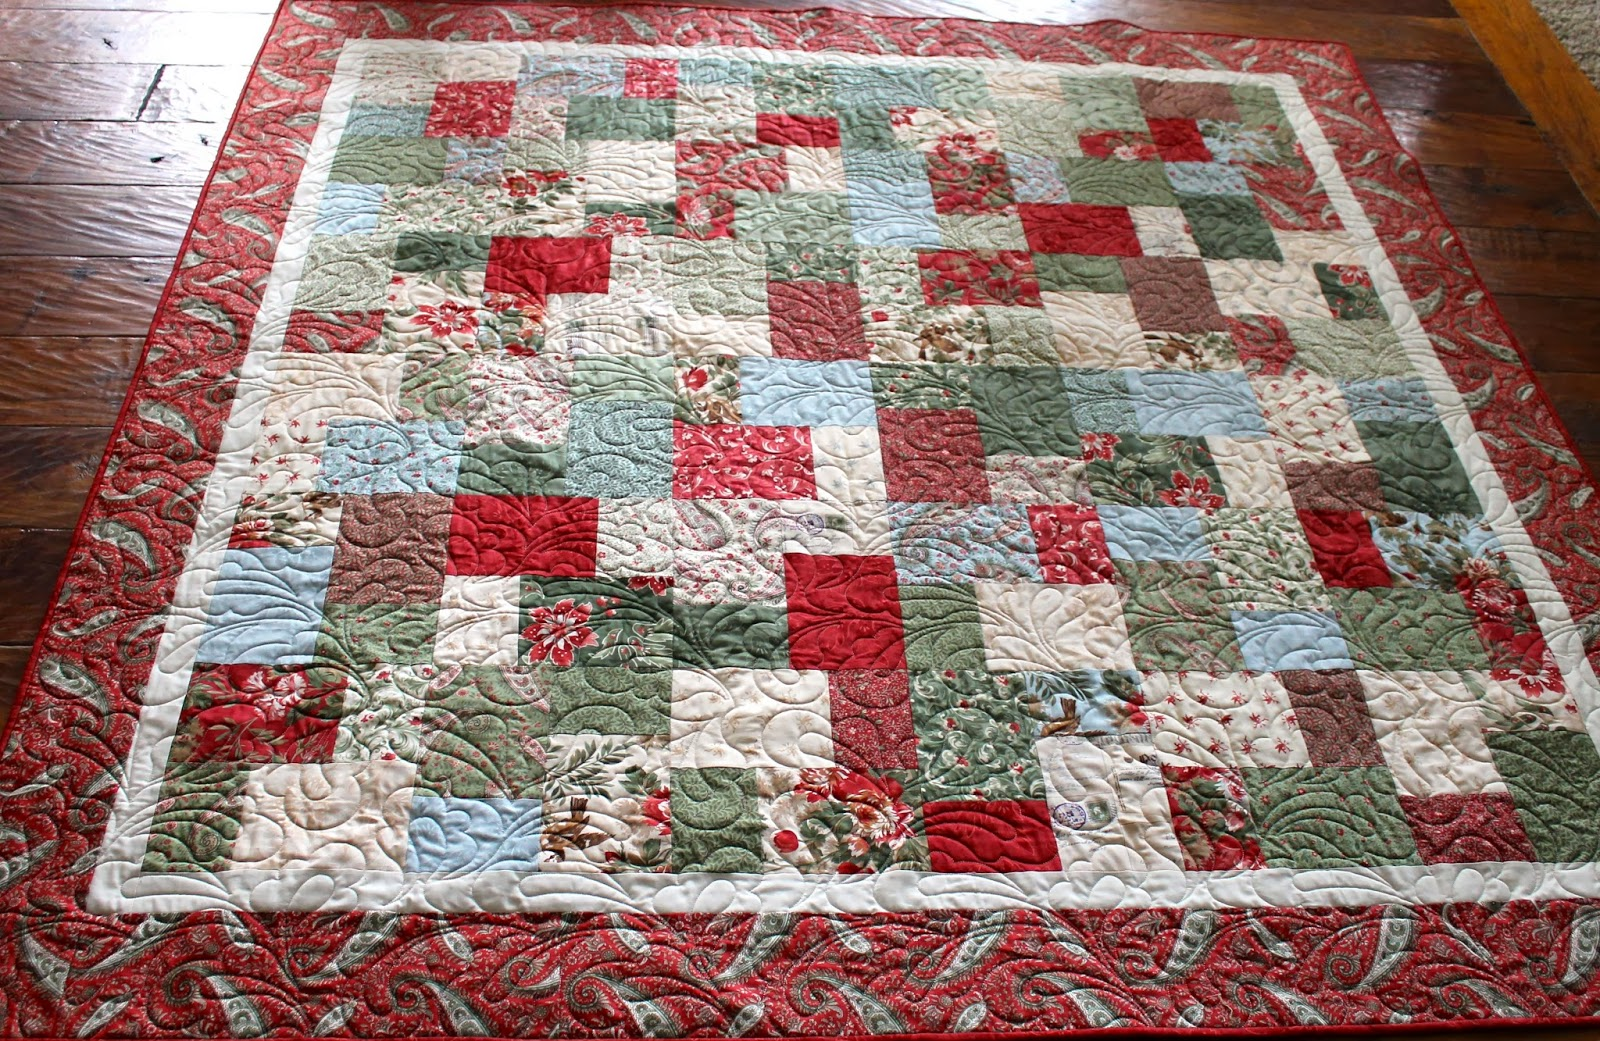 latimer lane bloggers quilt festival  throw quilt  sentiments -  a few weeks ago and my mom and her friends wanted to give her somethingspecial at this hard time in her life only fitting for that gift to be aquilt